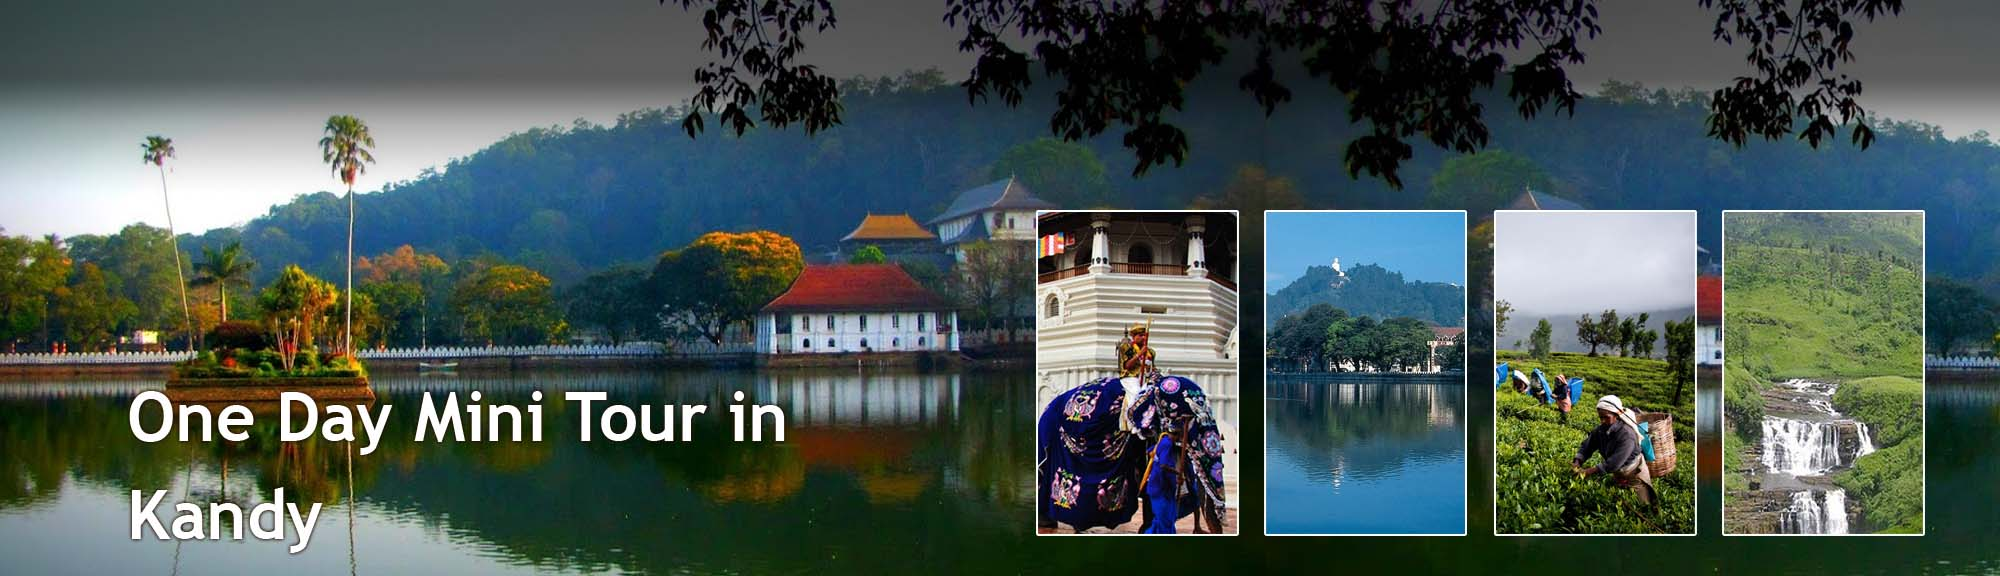 Kandy-one day tour